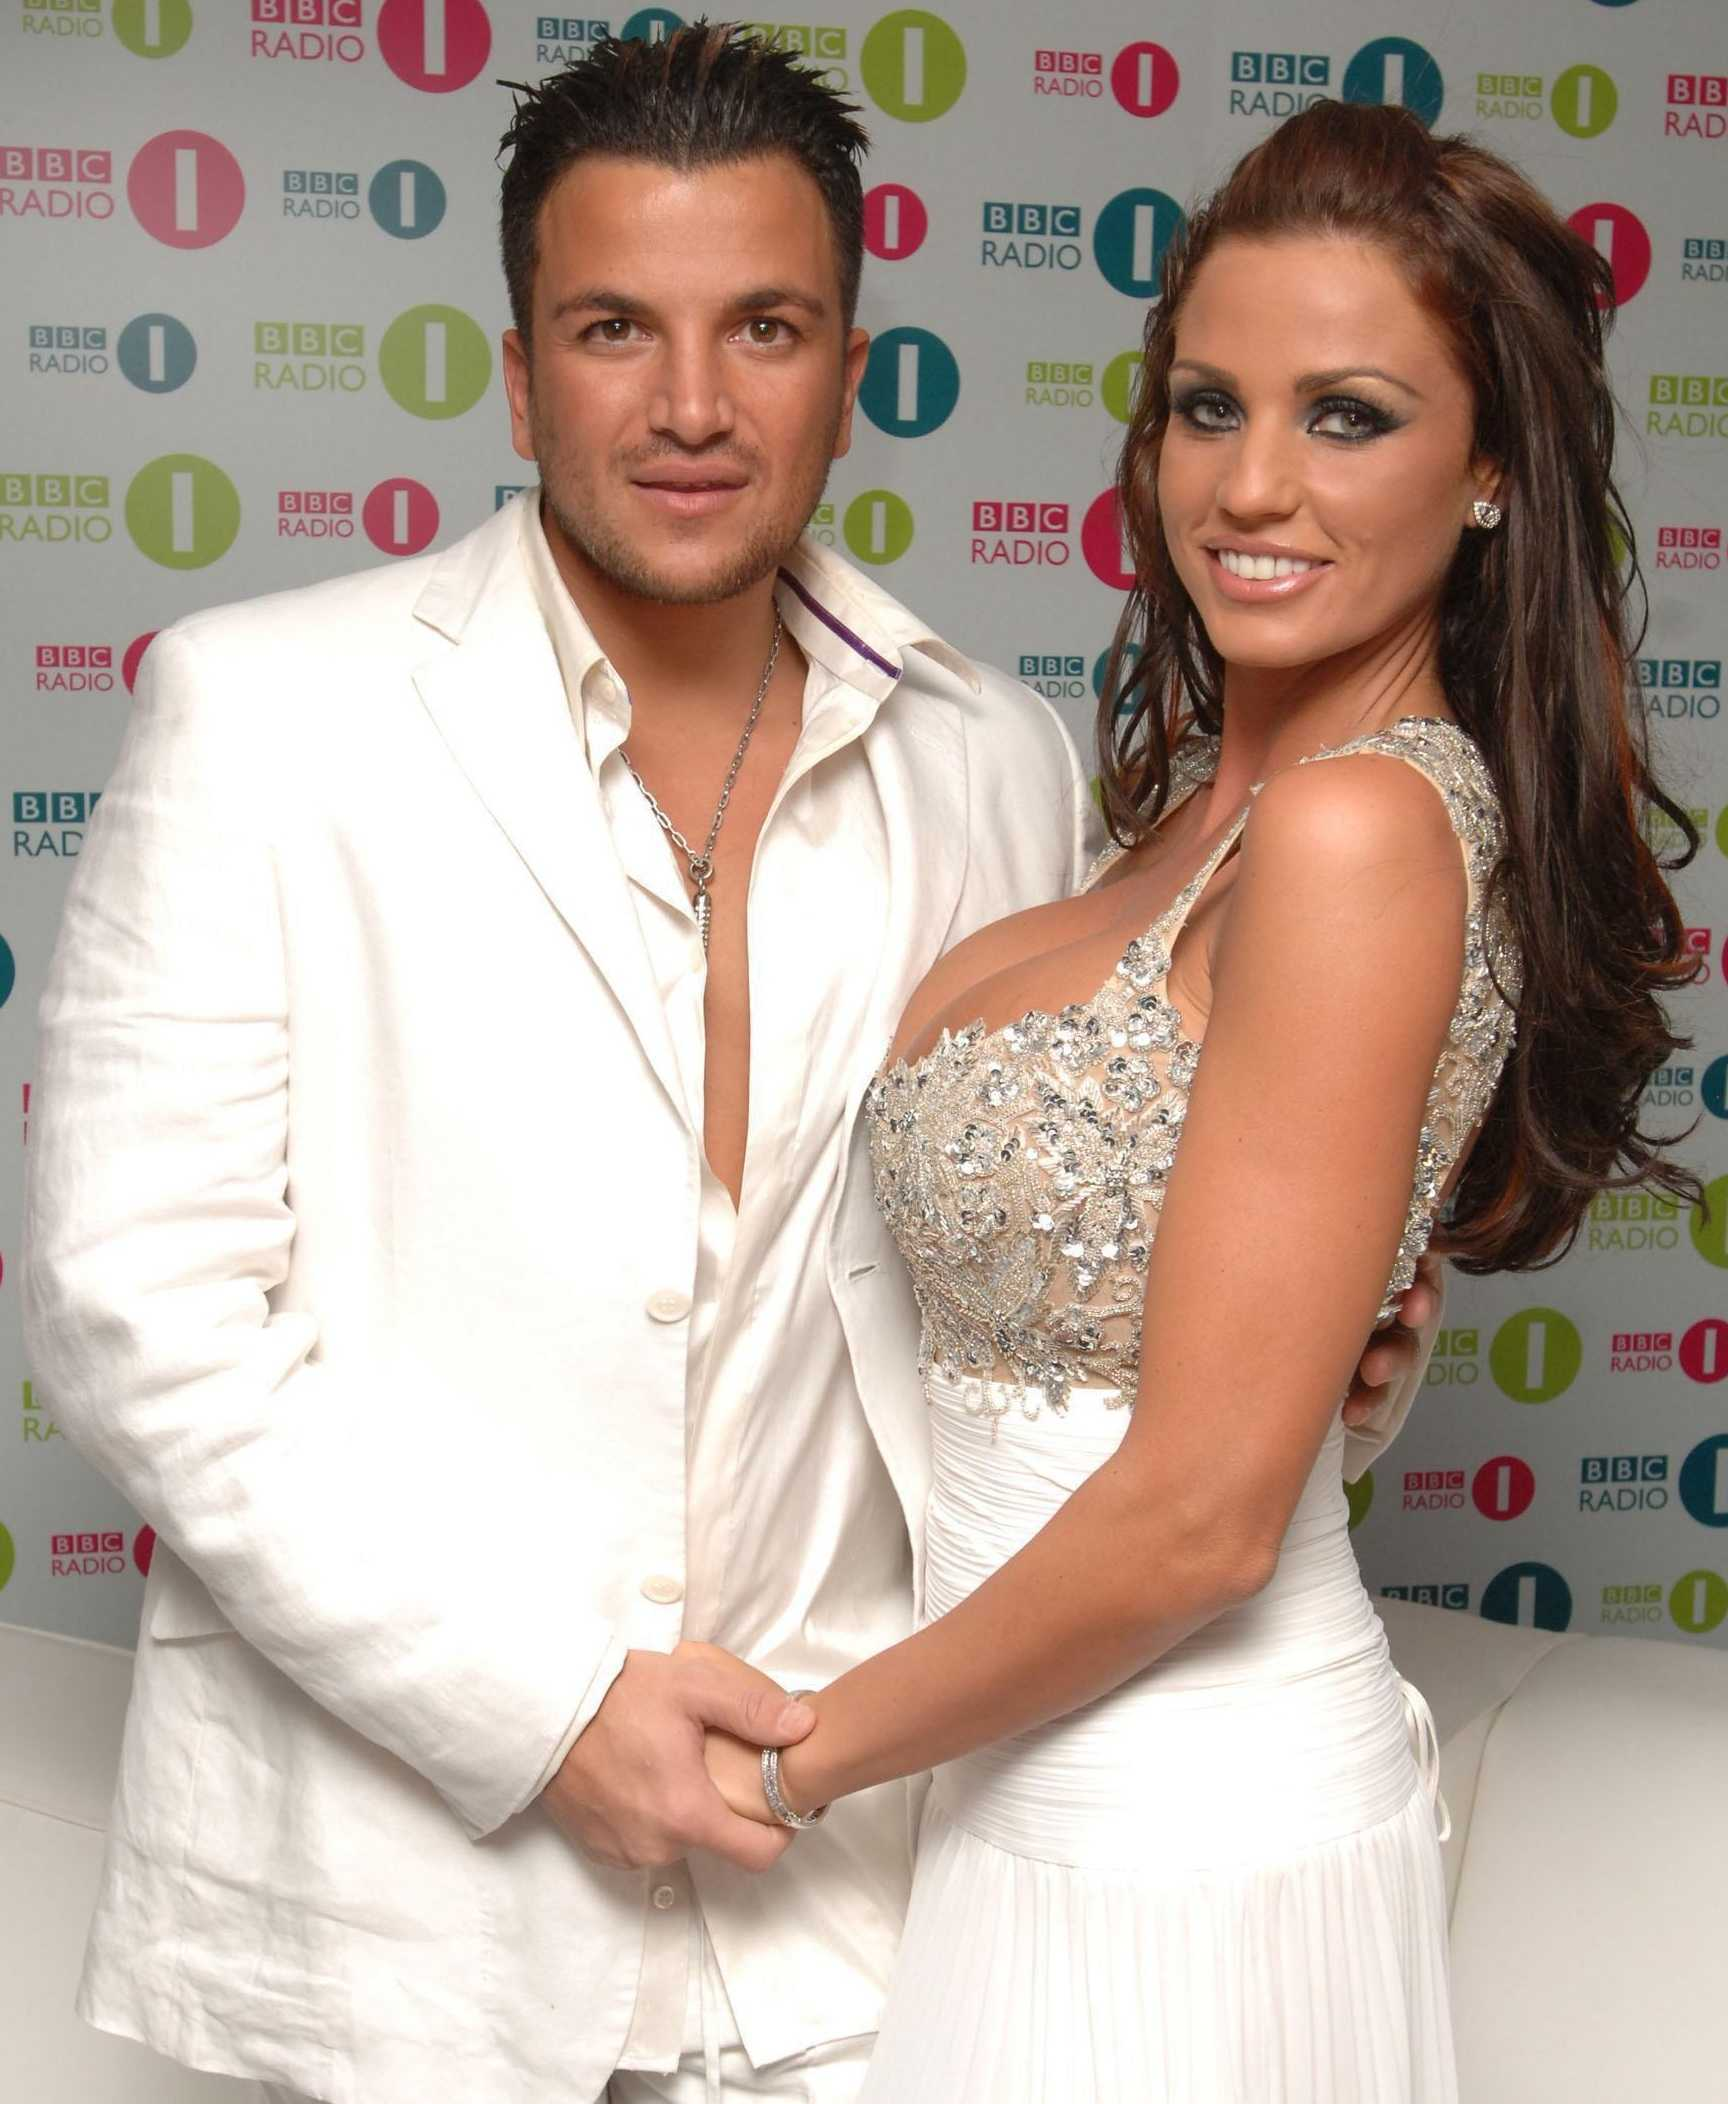 Peter Andre Ex wife